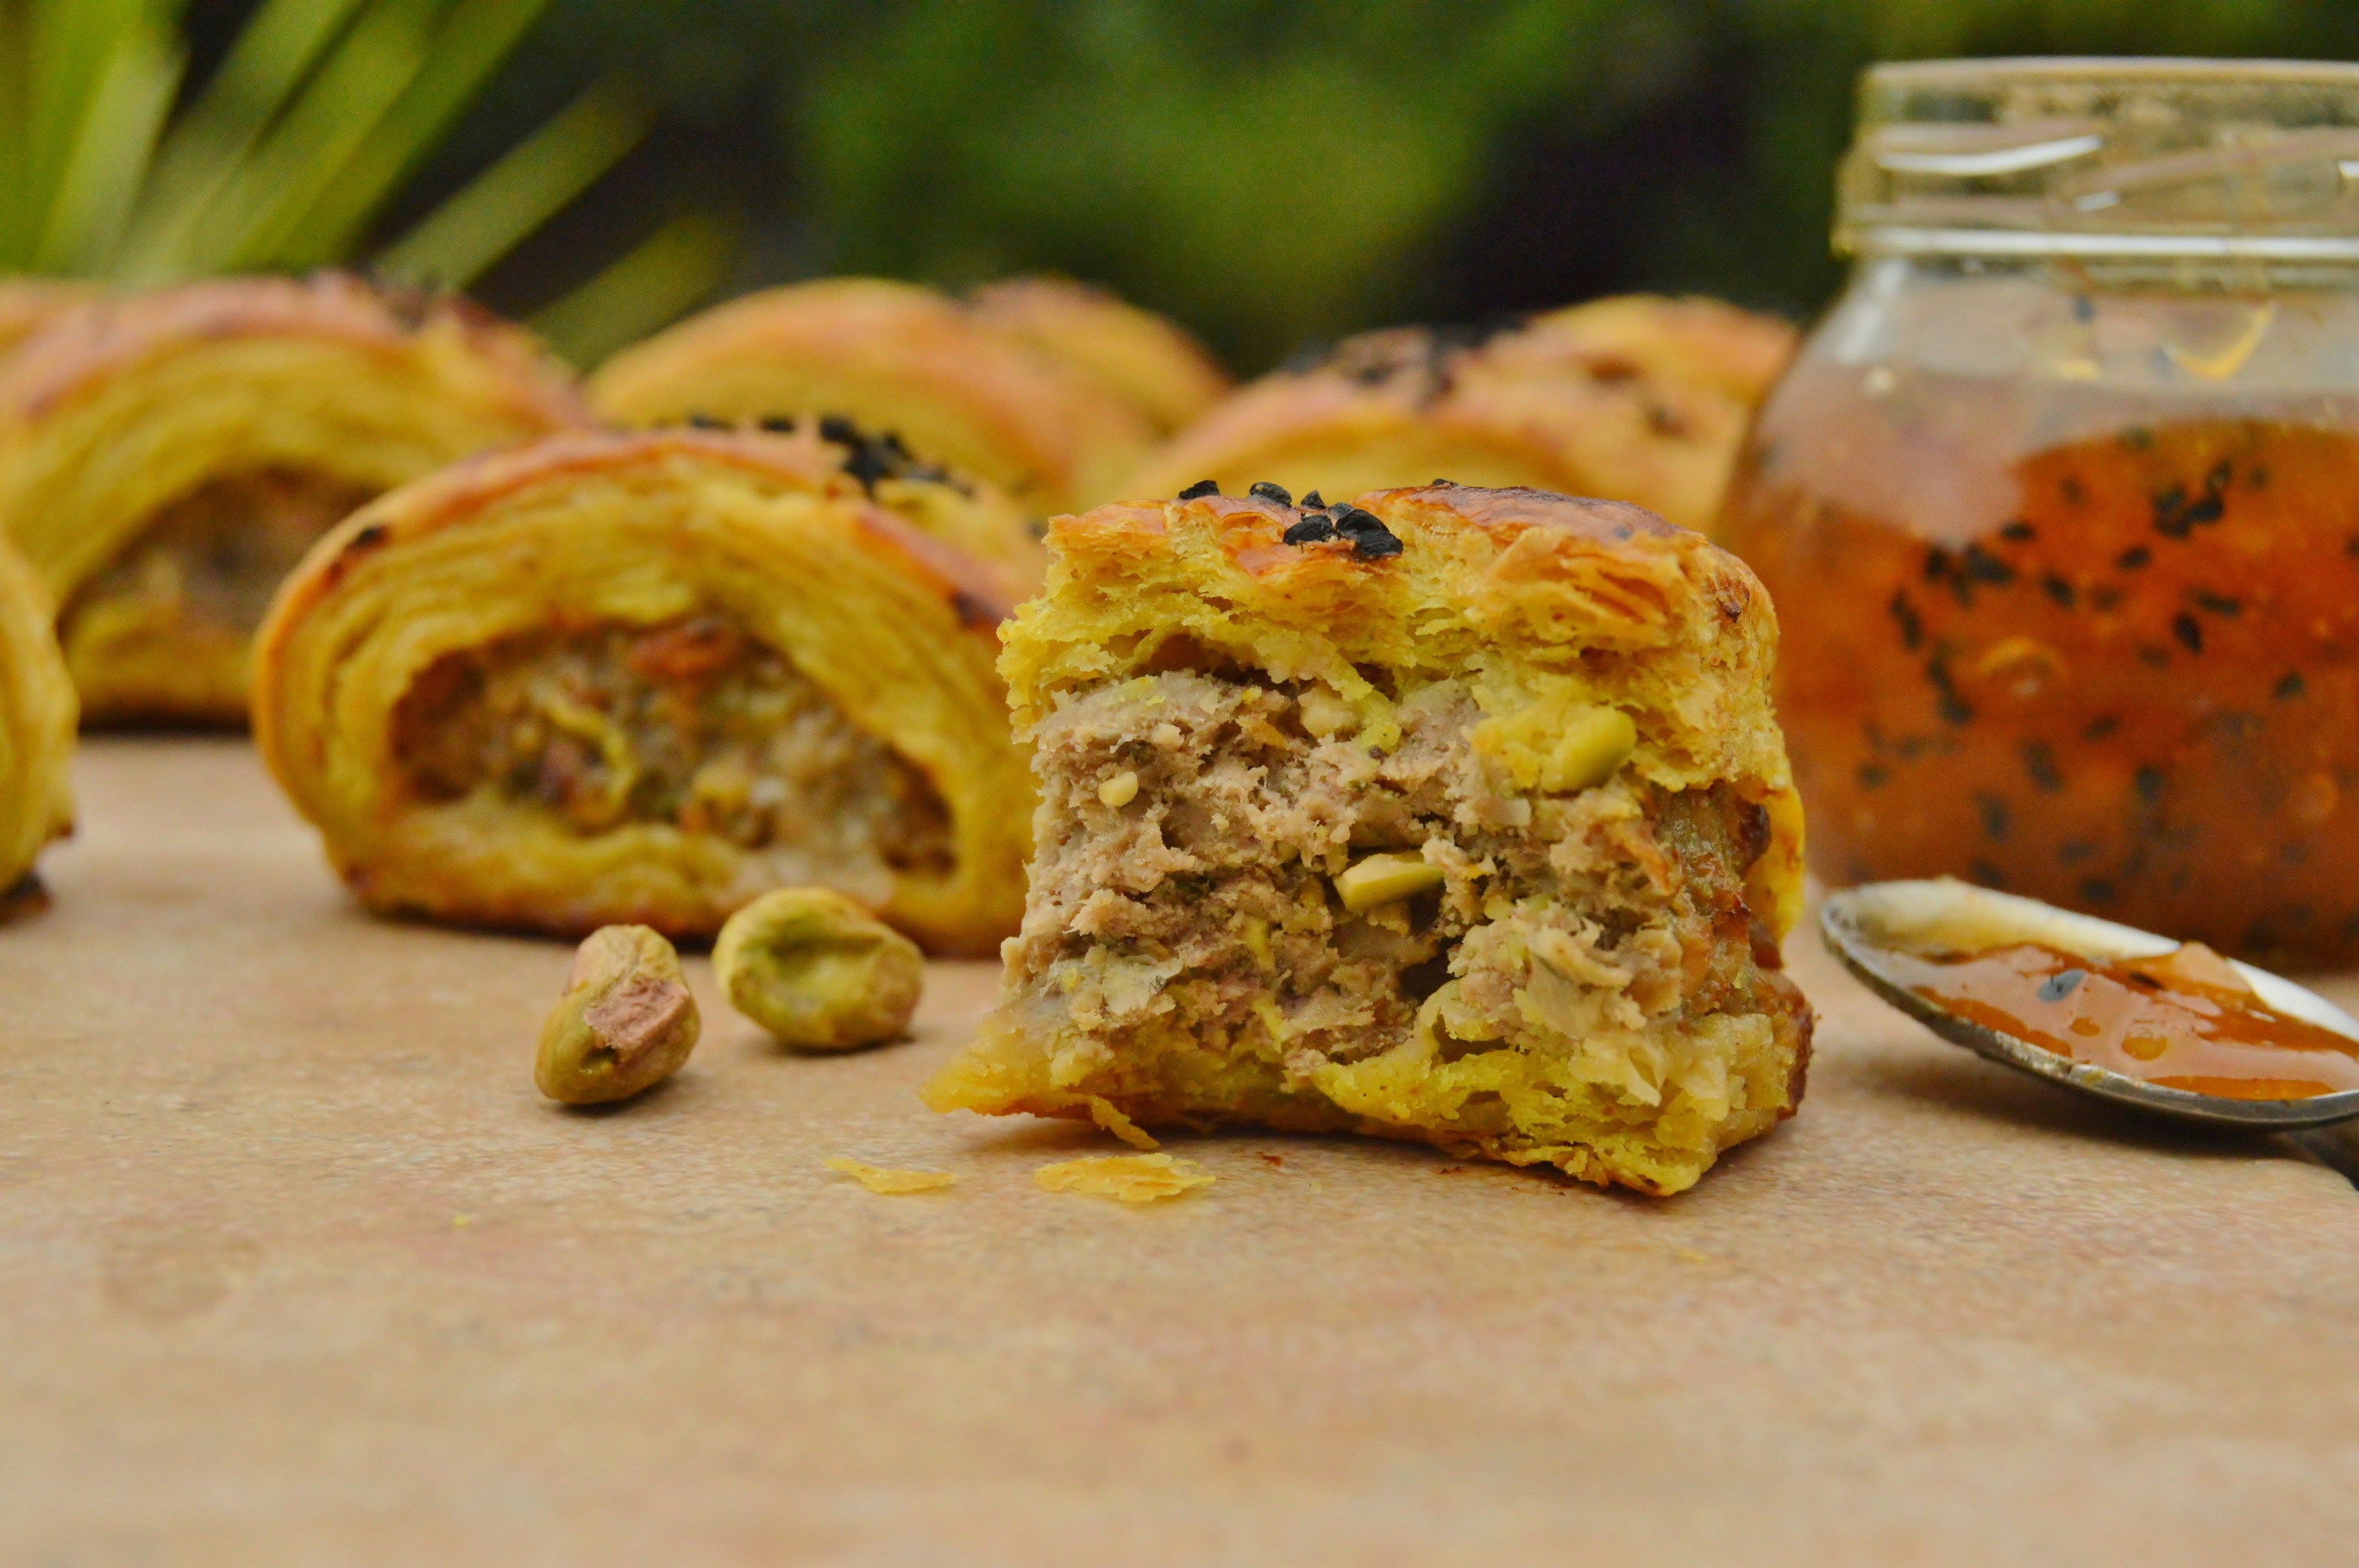 Savoury nibbles canap s bakingfanatic for Pastry canape fillings